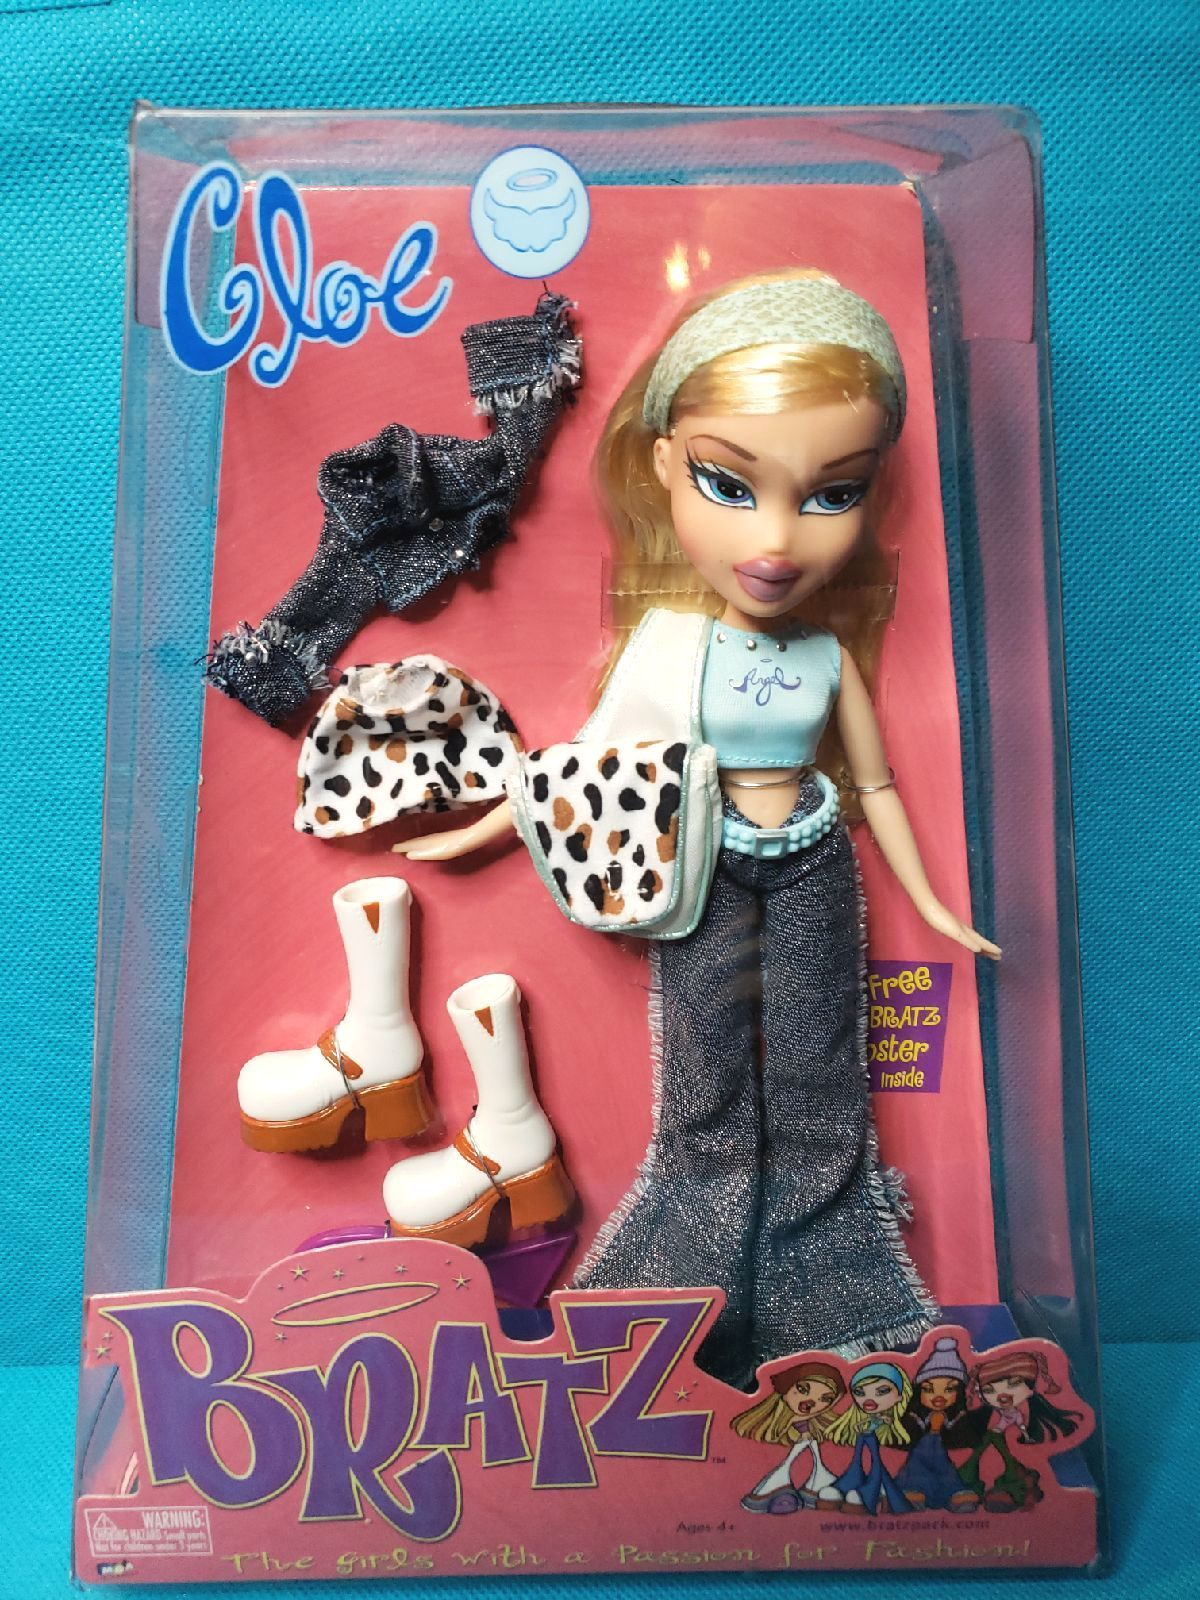 Bratz Cloe Doll First Edition In New Condition She Is Rare And Very Hard To Find From 2001 The Box Shows Some Wear Due To S Brat Doll Bratz Doll Bratz Girls